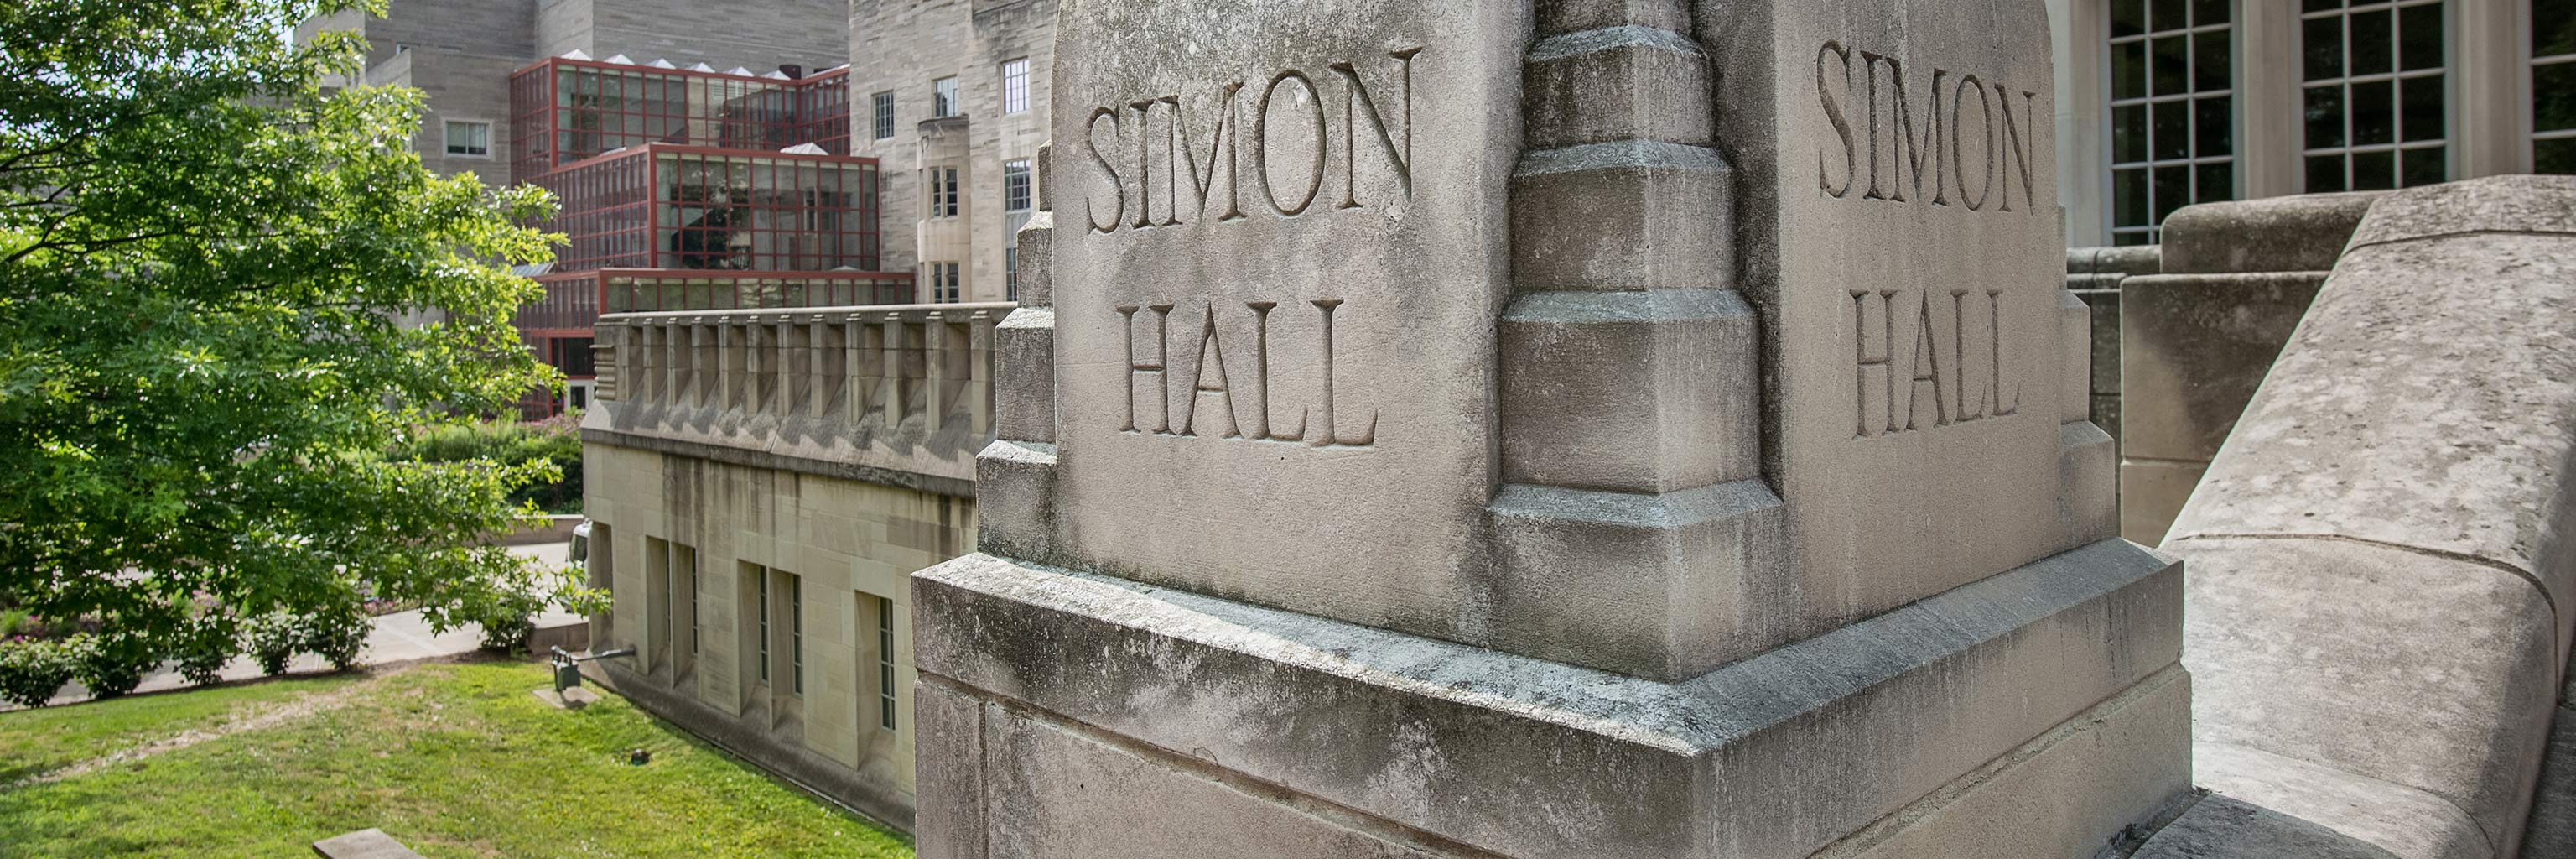 Simon Hall engraved building sign